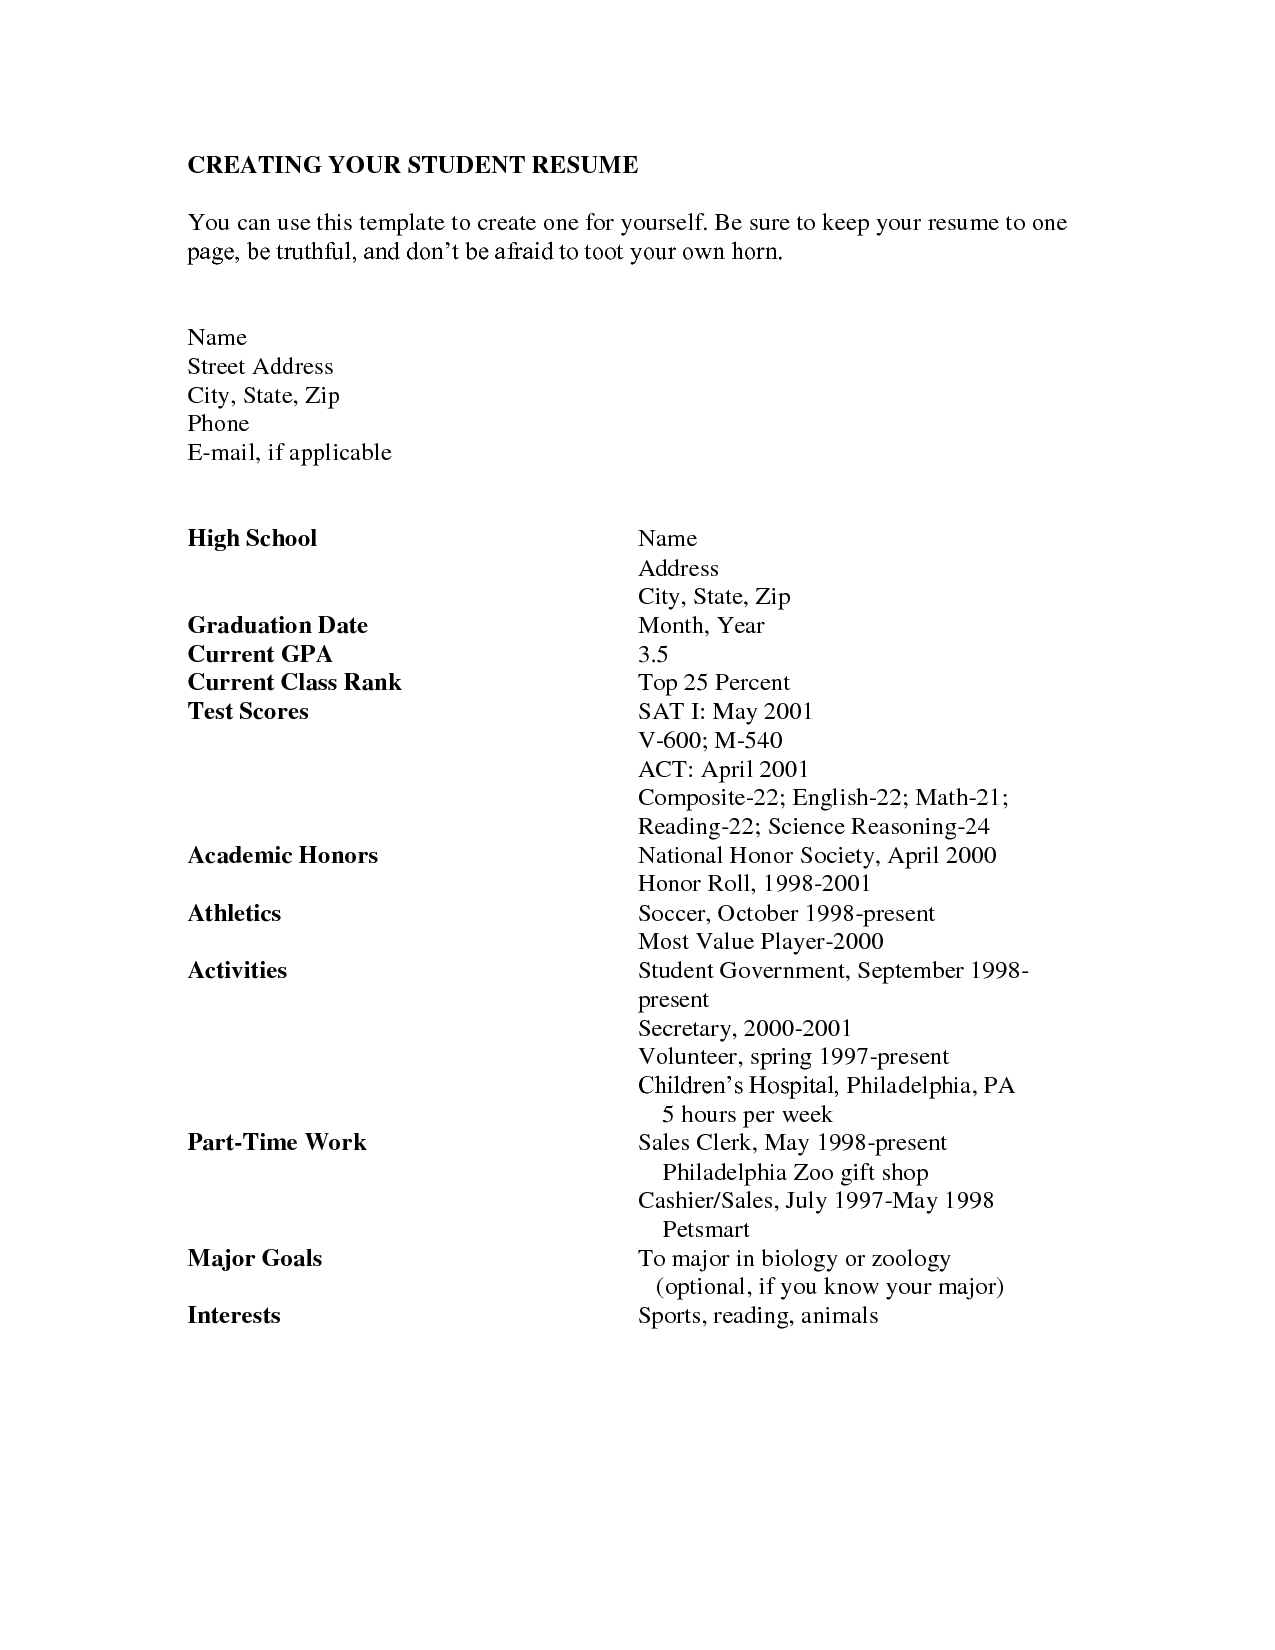 Resume For Highschool Students High School Resume Academic Resume Builder Resume Templates  Http